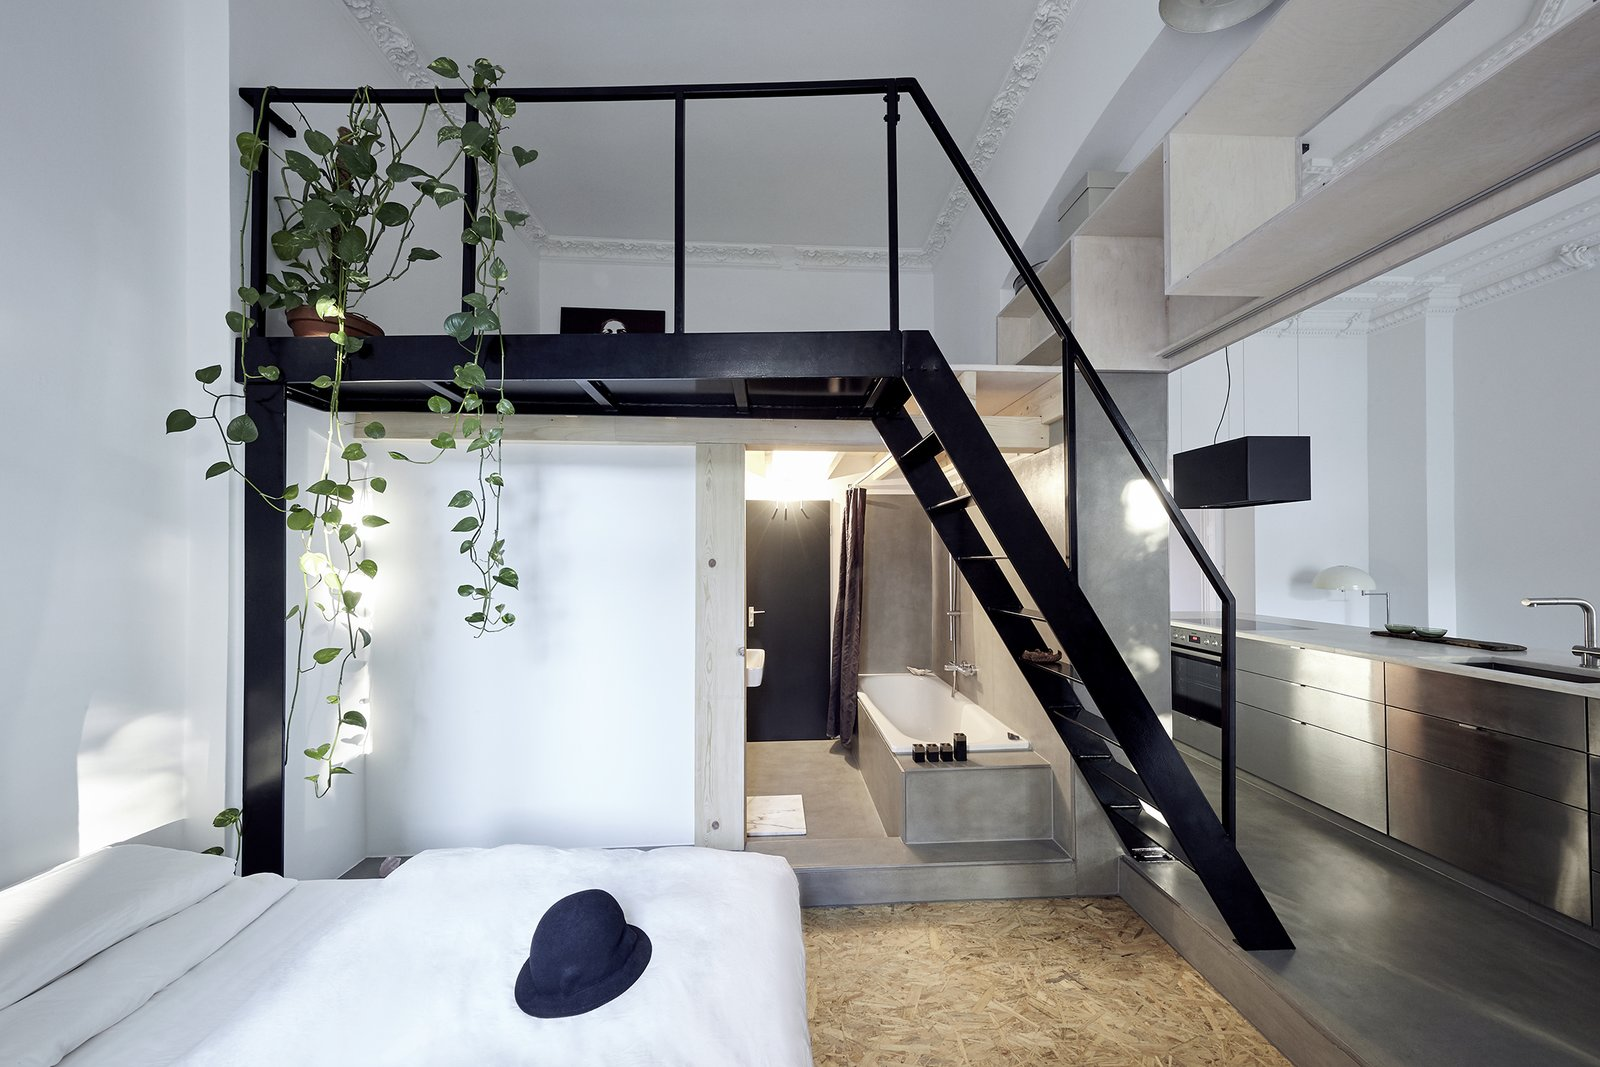 Bedroom, Concrete Floor, Bed, Plywood Floor, and Pendant Lighting  Best Photos from 8 Berlin Apartments to Book That Rival the City's Level of Cool